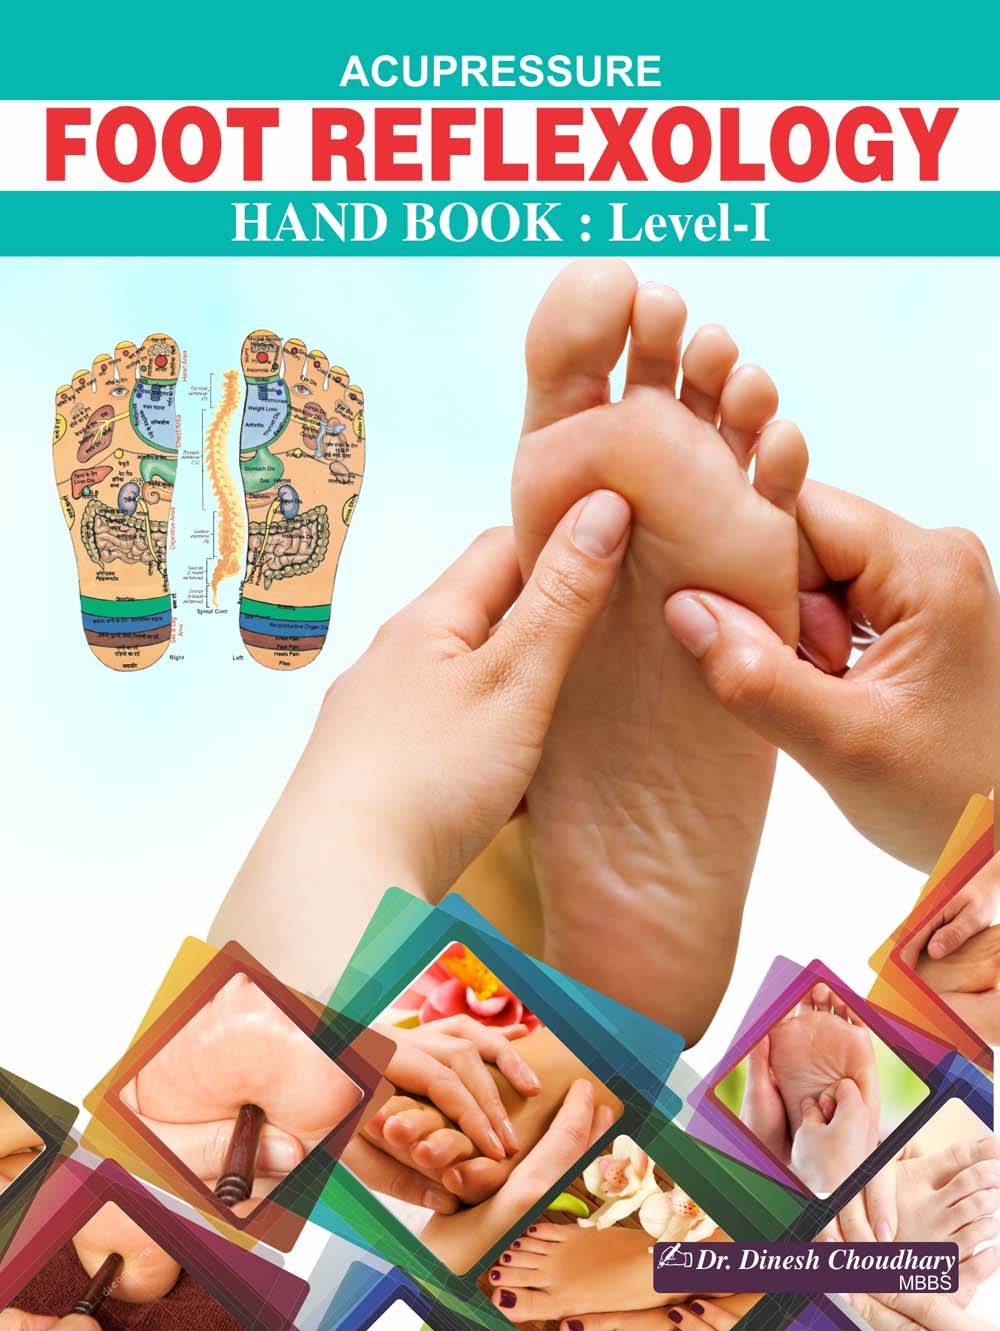 Acupressure Foot Reflexology- Dr.Dinesh Choudhary